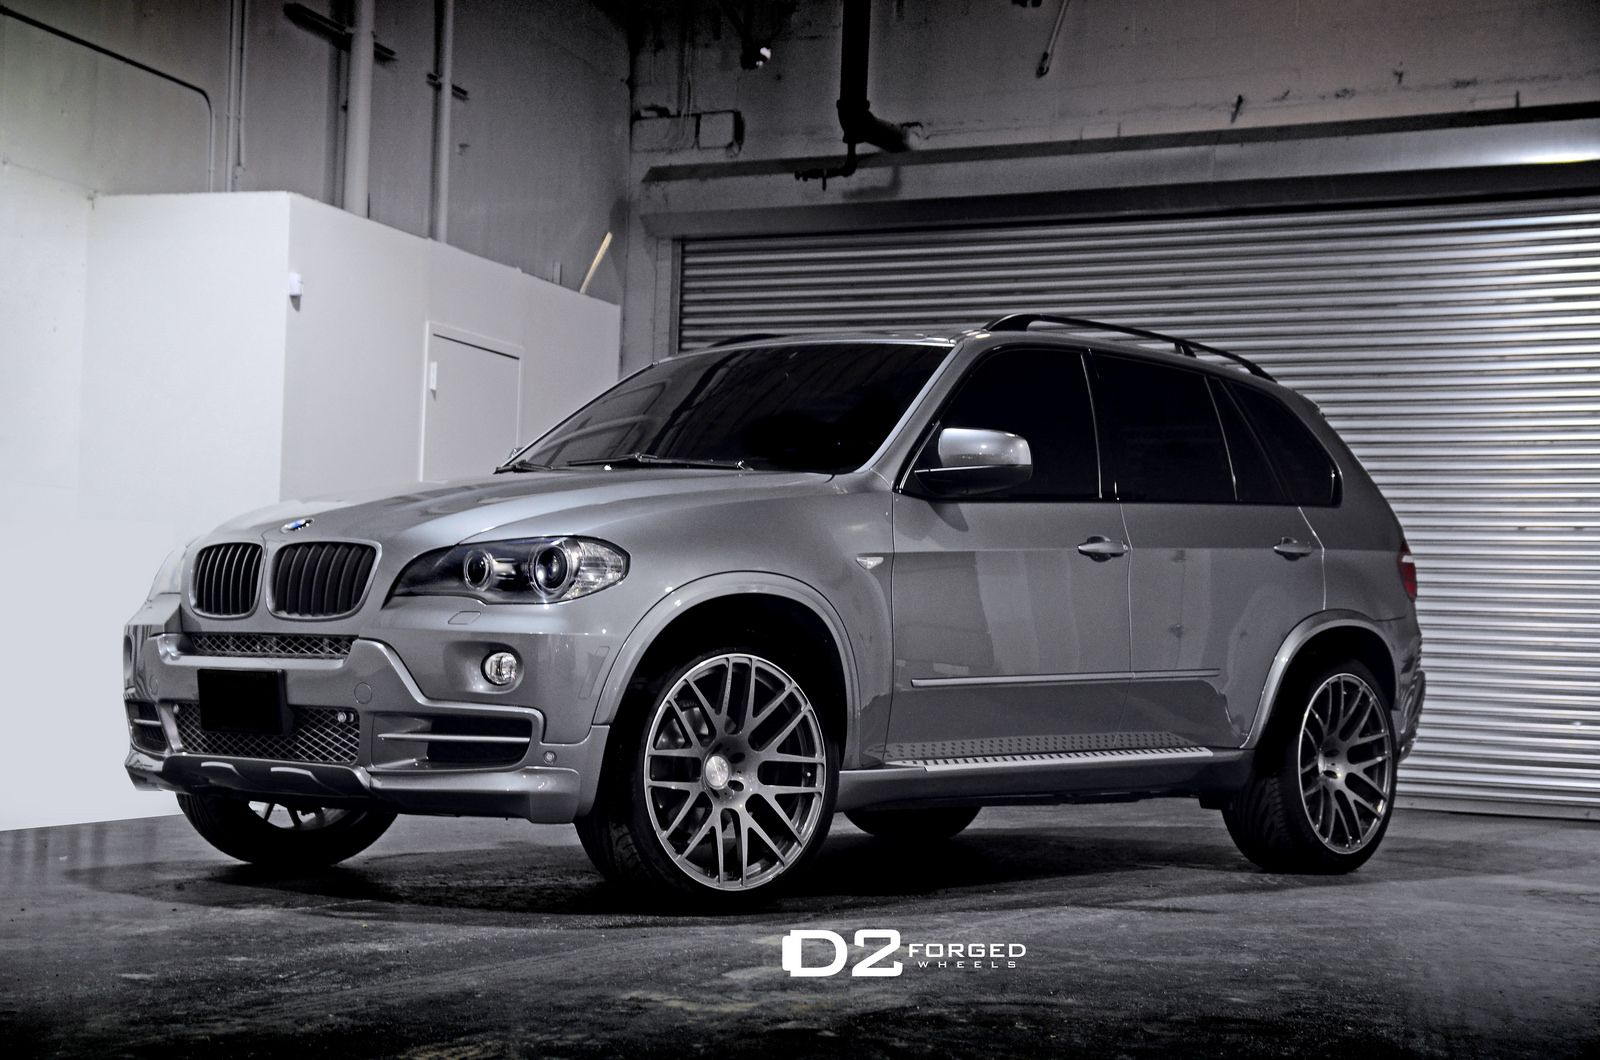 bmw x5 with custom d2forged mb1 monoblock wheels bmws pinterest bmw x5 bmw and wheels. Black Bedroom Furniture Sets. Home Design Ideas